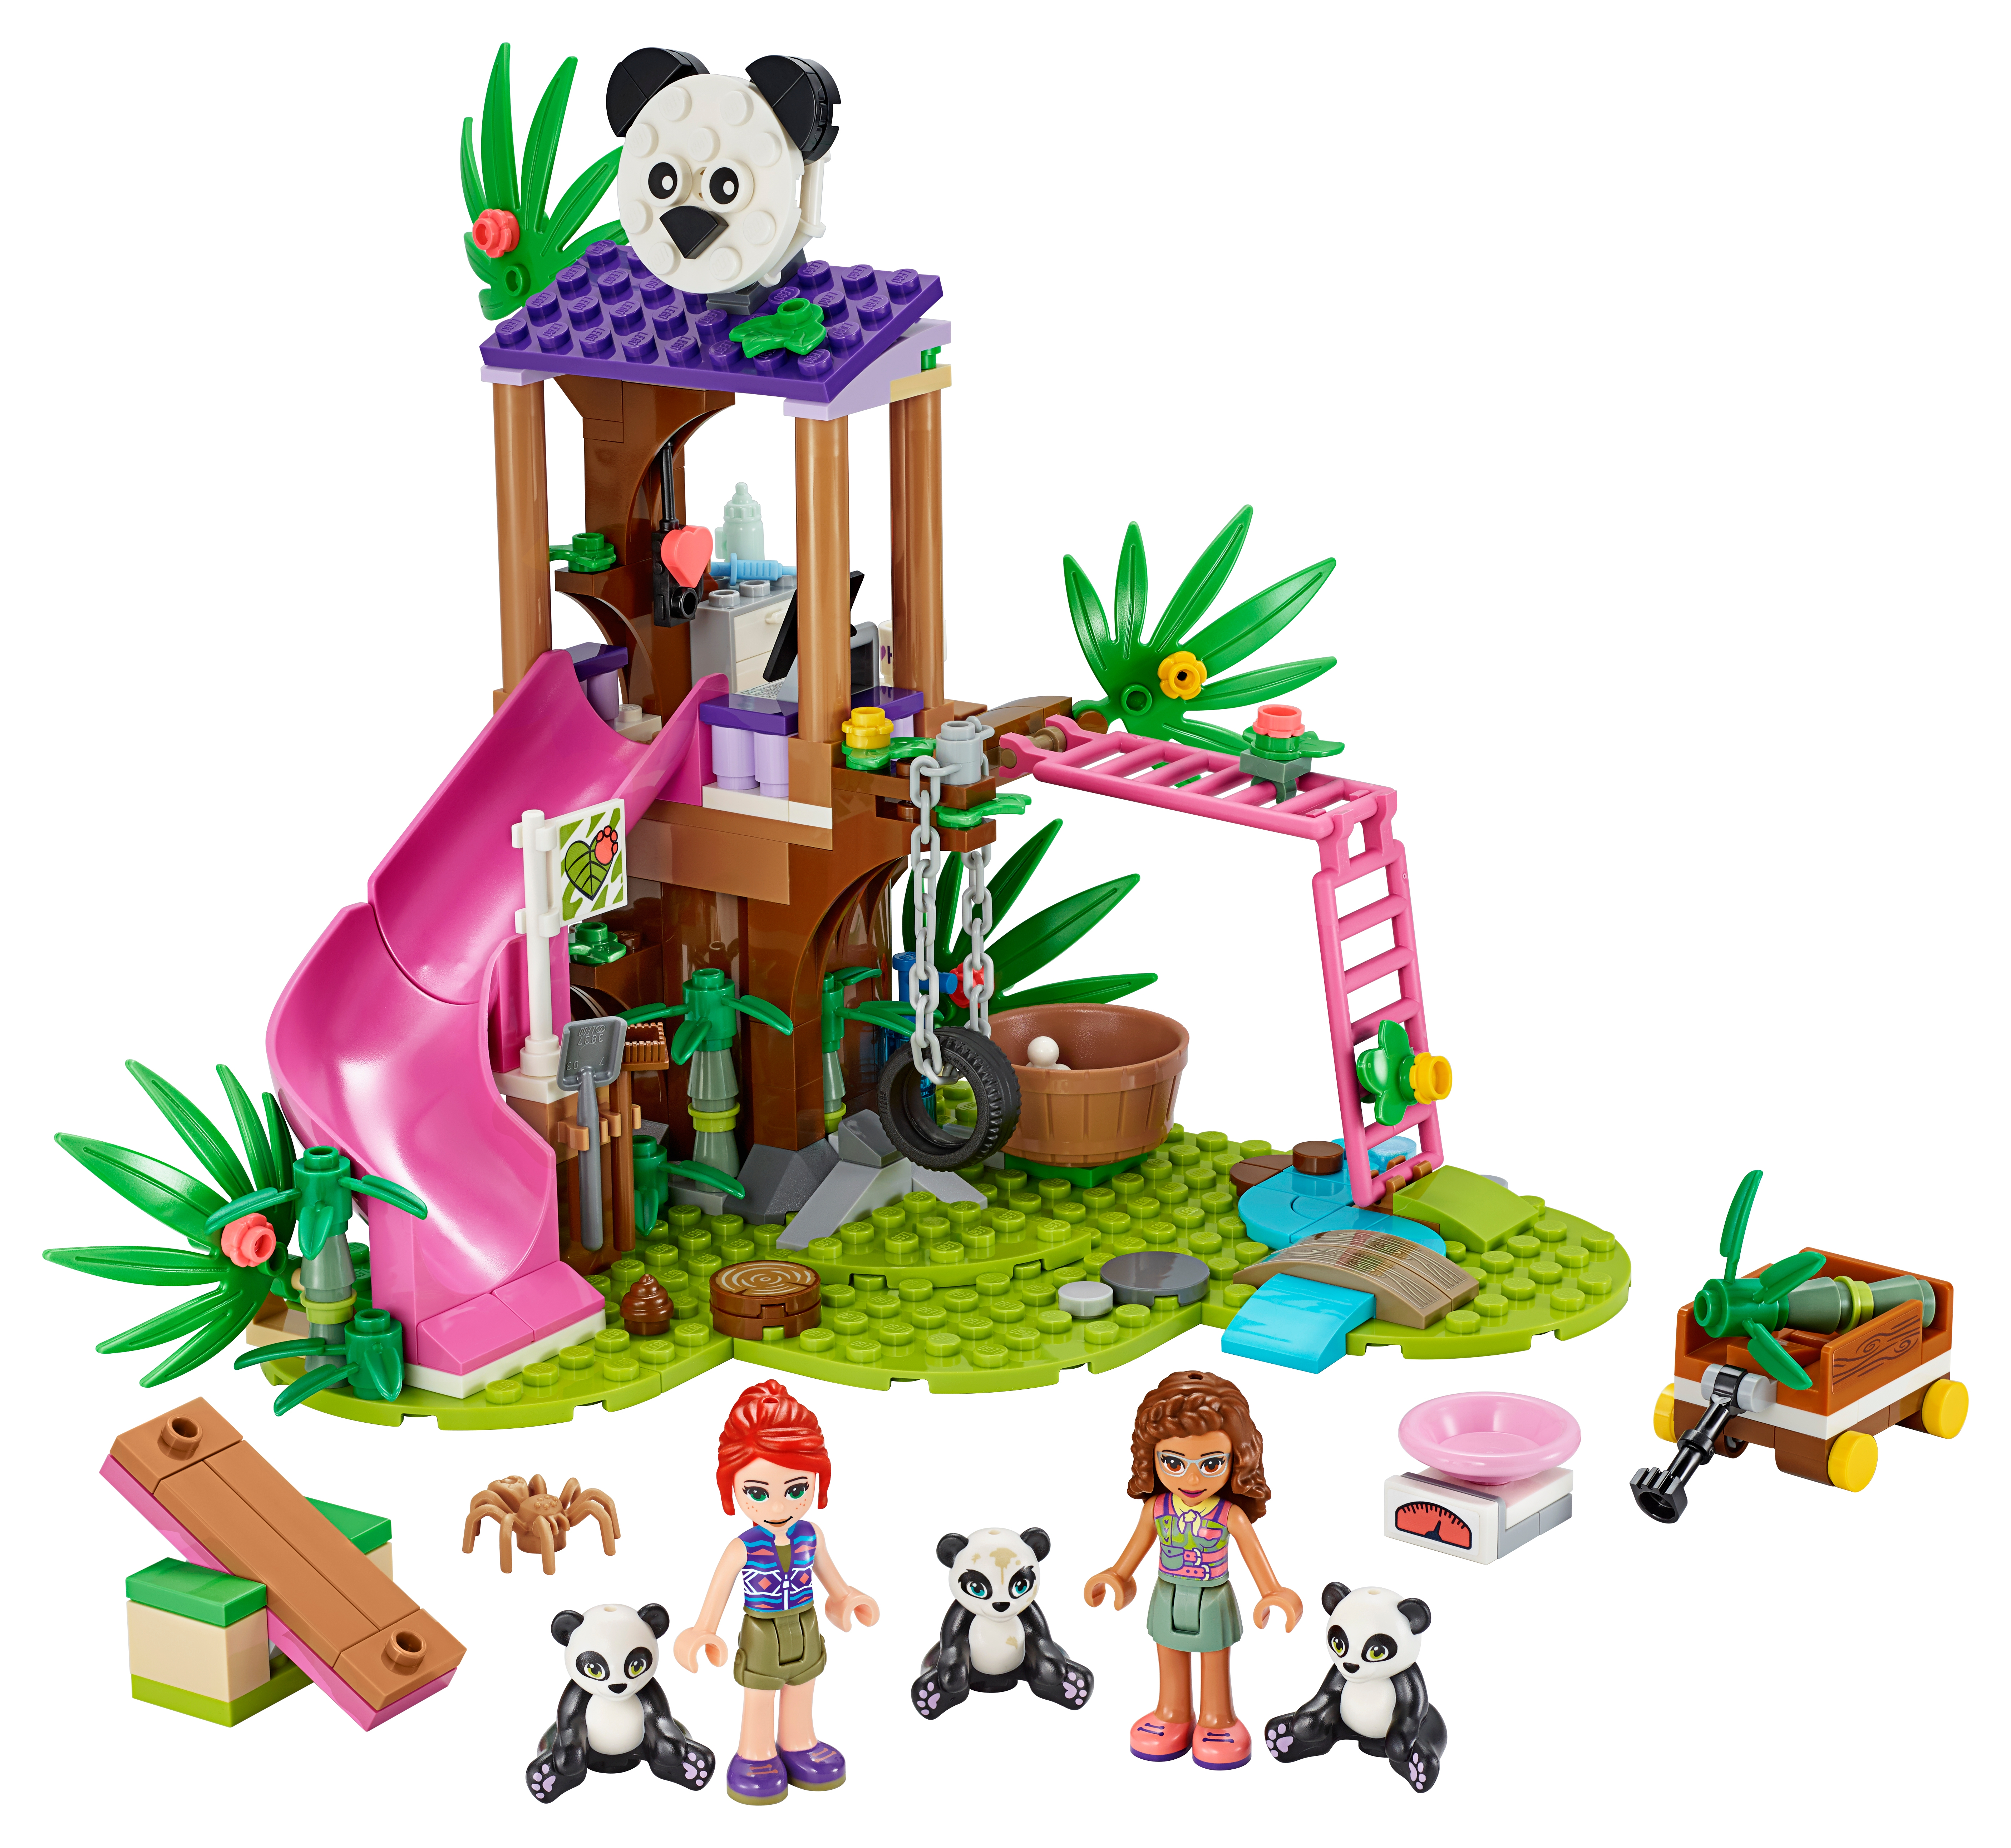 Picture of: Panda Jungle Tree House 41422 Friends Buy Online At The Official Lego Shop Ca